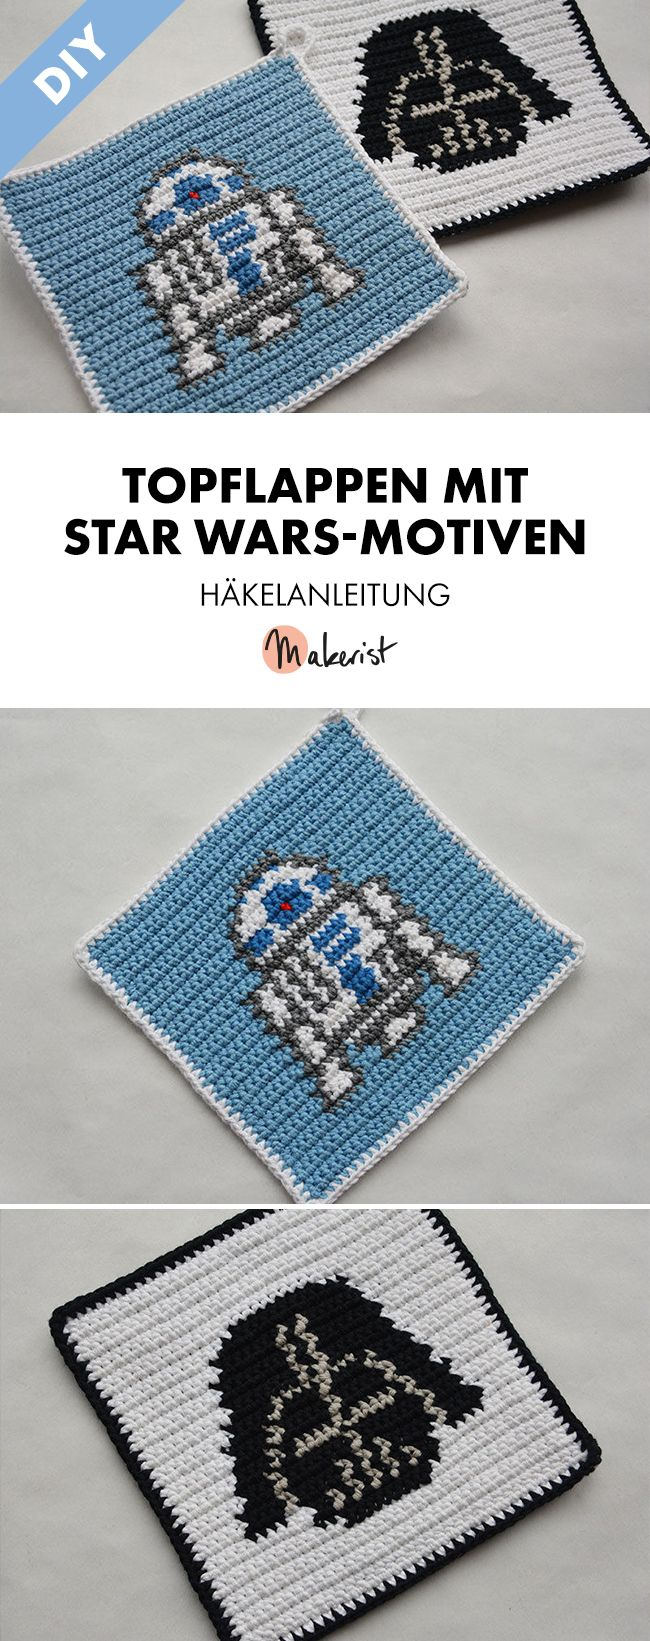 Stylishe Topflappen mit Star Wars-Motiven für Nerds und Fans - Häkelanleitung via Makerist.de  #häkelnmitmakerist #häkeln #häkelnisttoll #häkelanleitung #starwars #r2d2 #darthvader #fan #nerd #nerdy #merch #movie #küche #kitchen #topflappen #crochetturtles